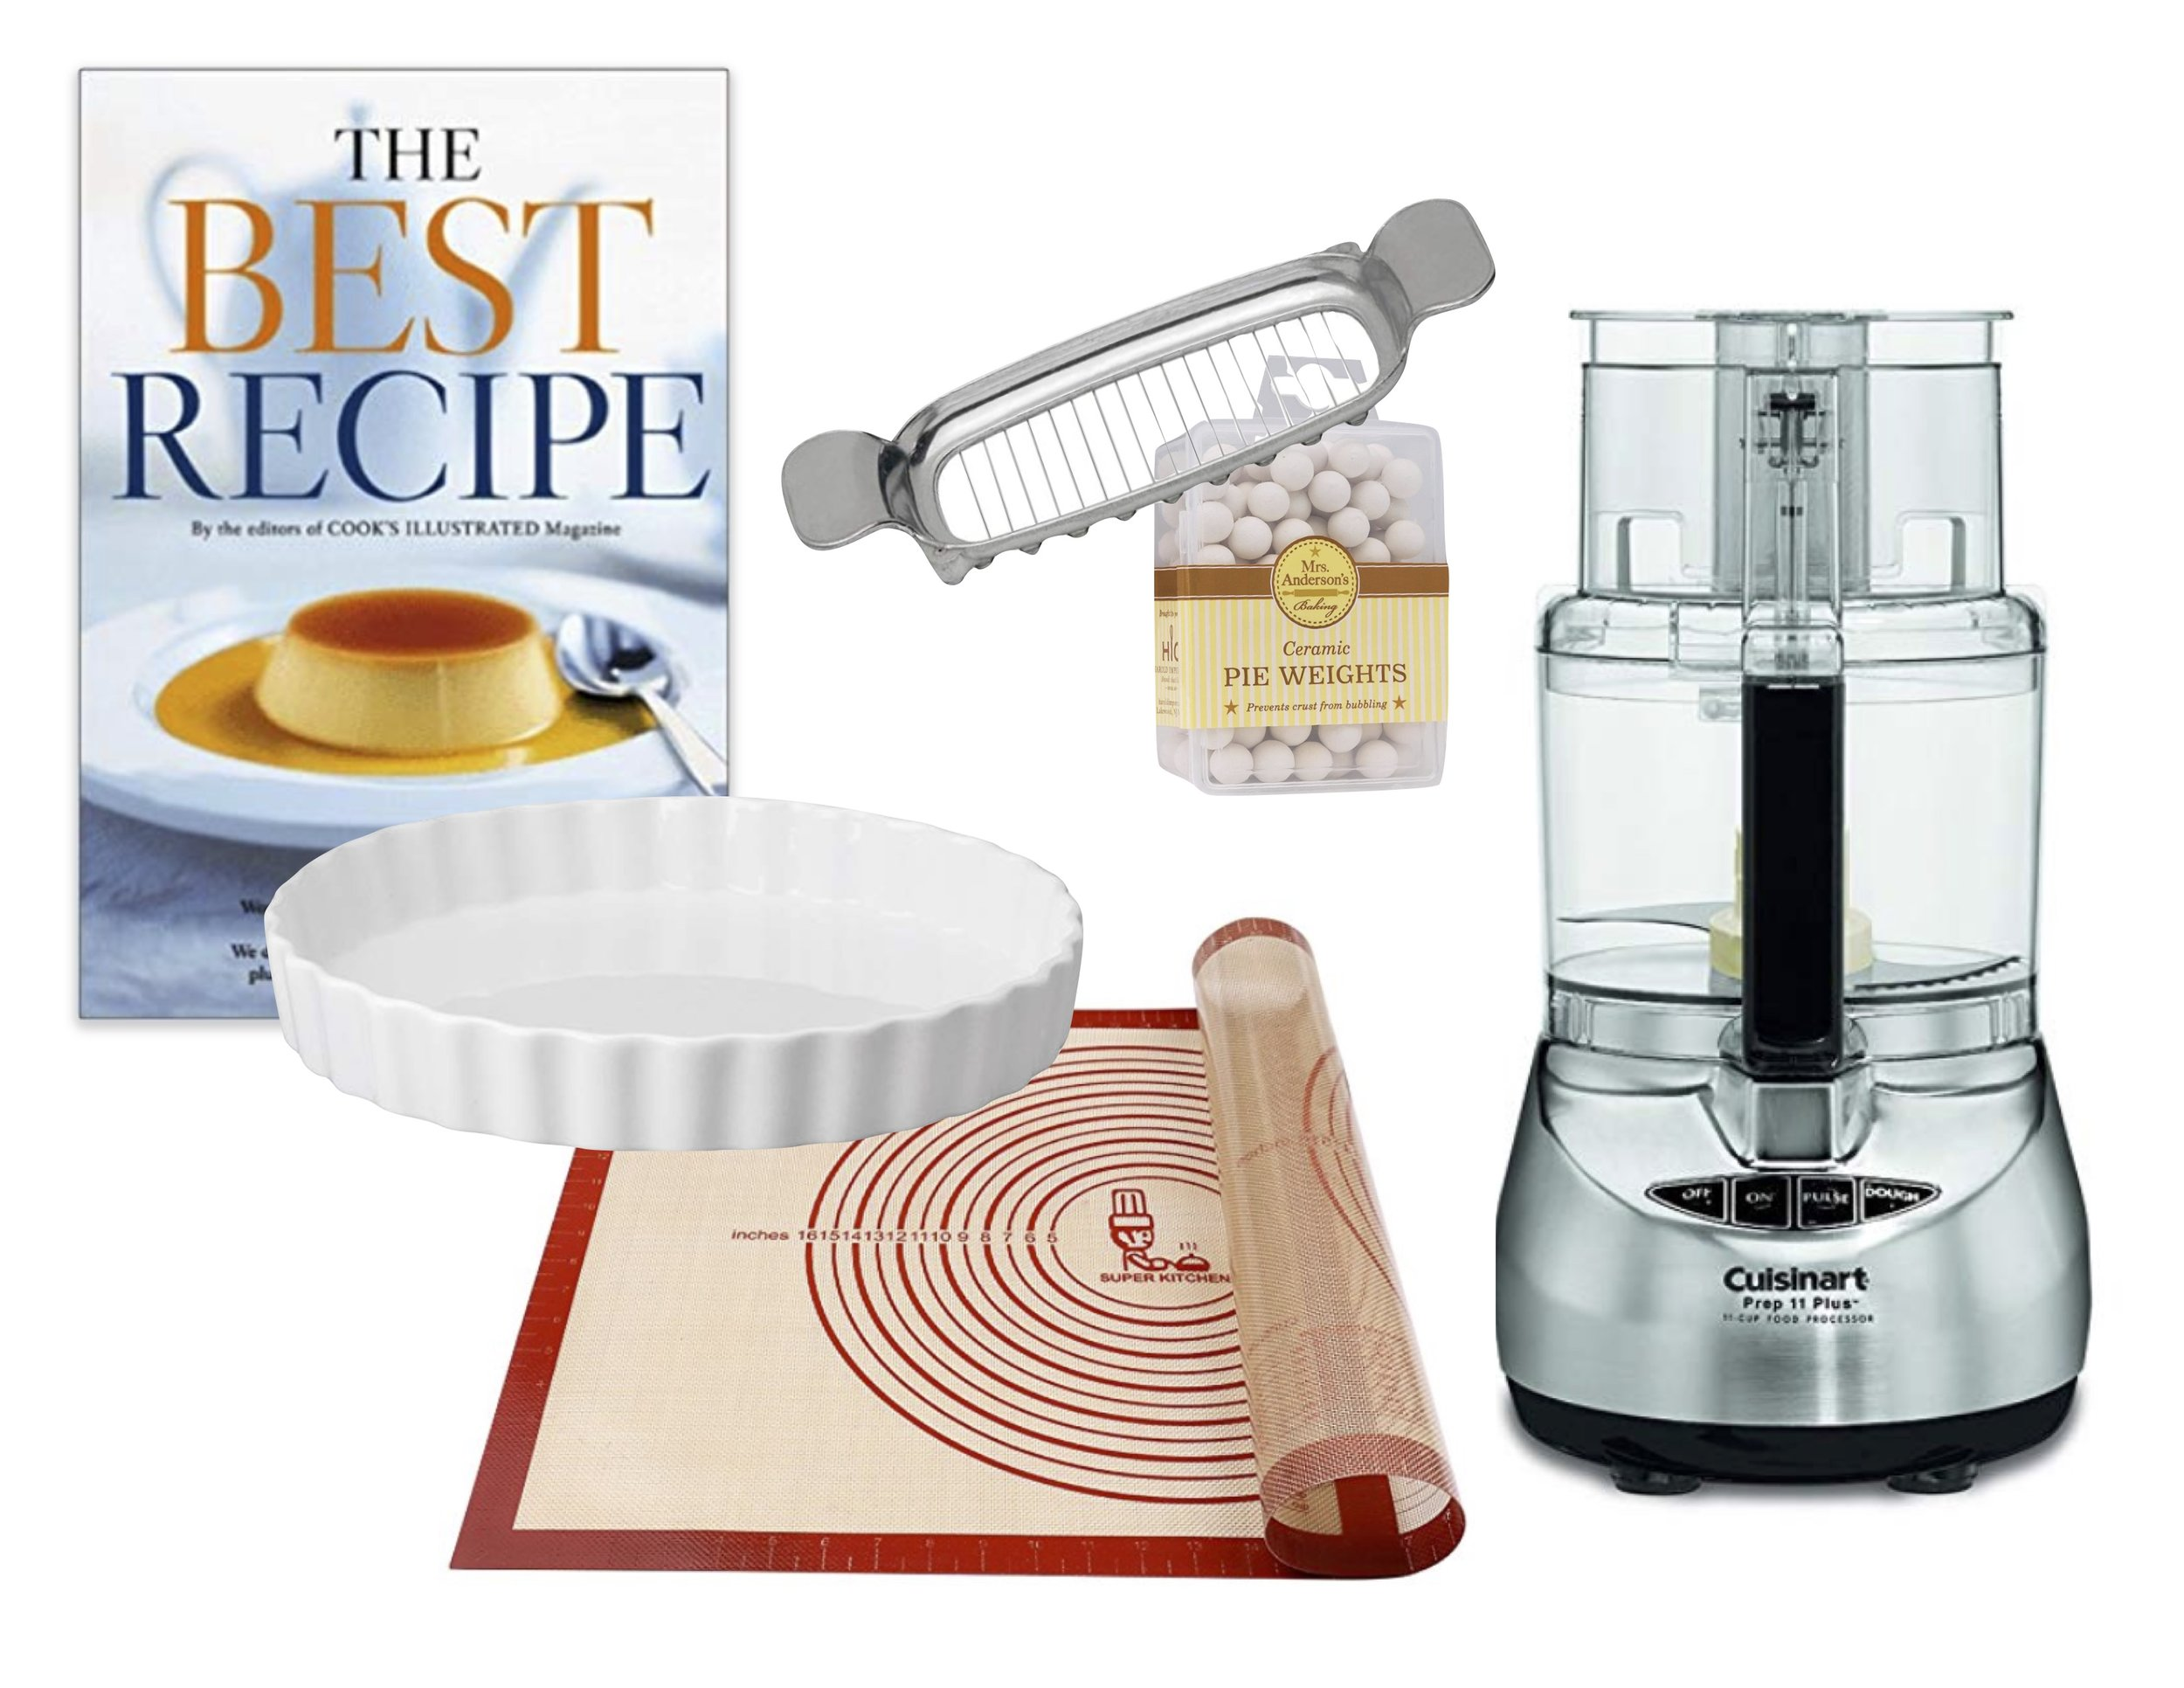 Cookbook   |   Quiche Dish   |   Pastry Mat   |   Food Processor   |   Pie Weights   |   Butter Slicer